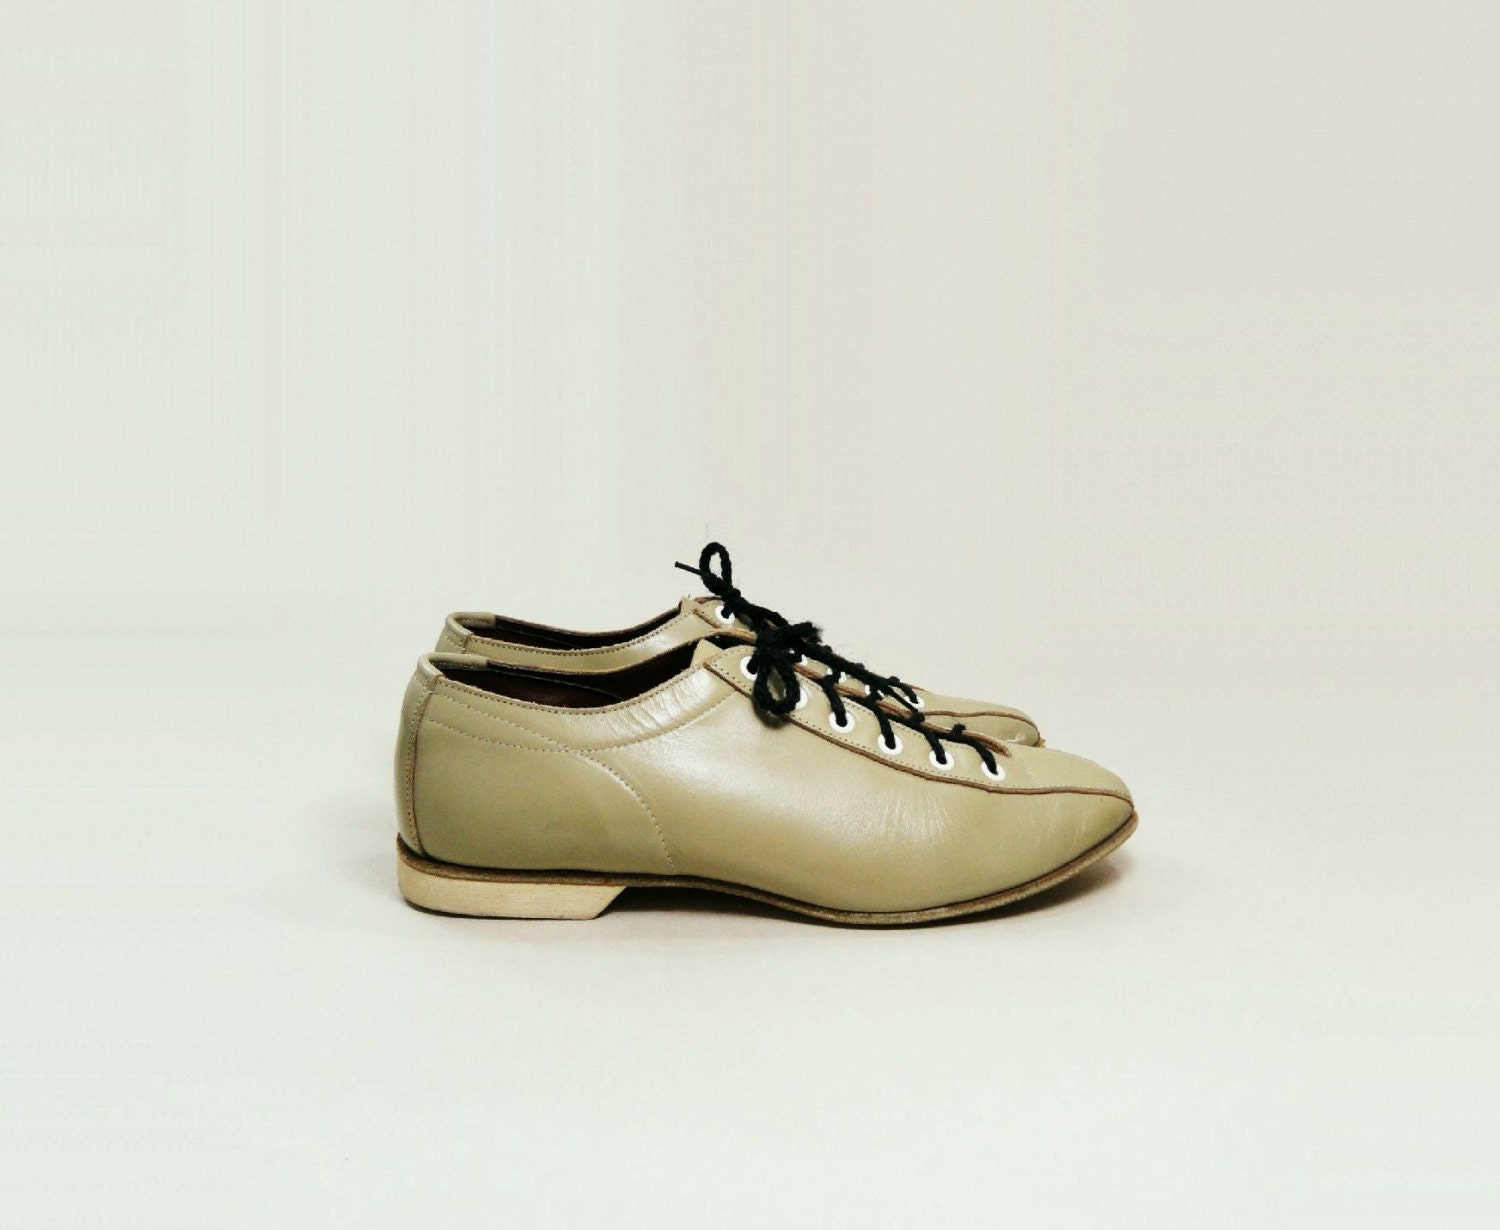 Vintage Bowling Shoes 1970s Olive Green Taupe Leather Flats Sz 7.5